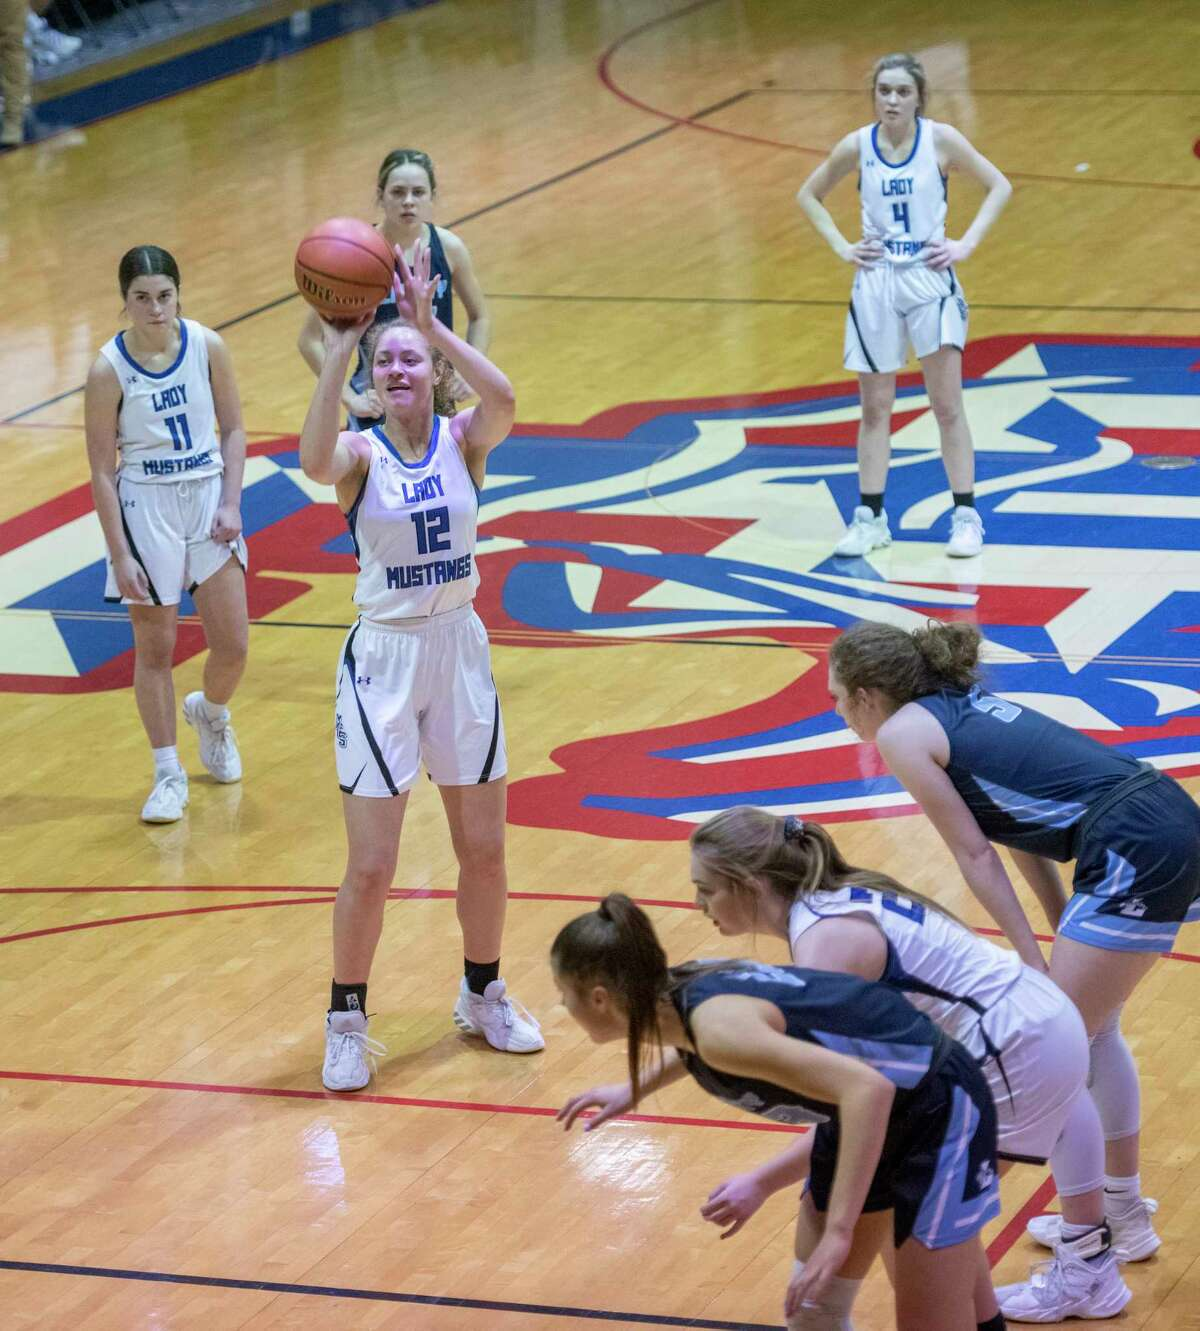 Midland Christian's Brooklyn Johnson puts up a free throw against Argyle Liberty 02/20/2021 at the McGraw Event Center. Tim Fischer/Reporter-Telegram